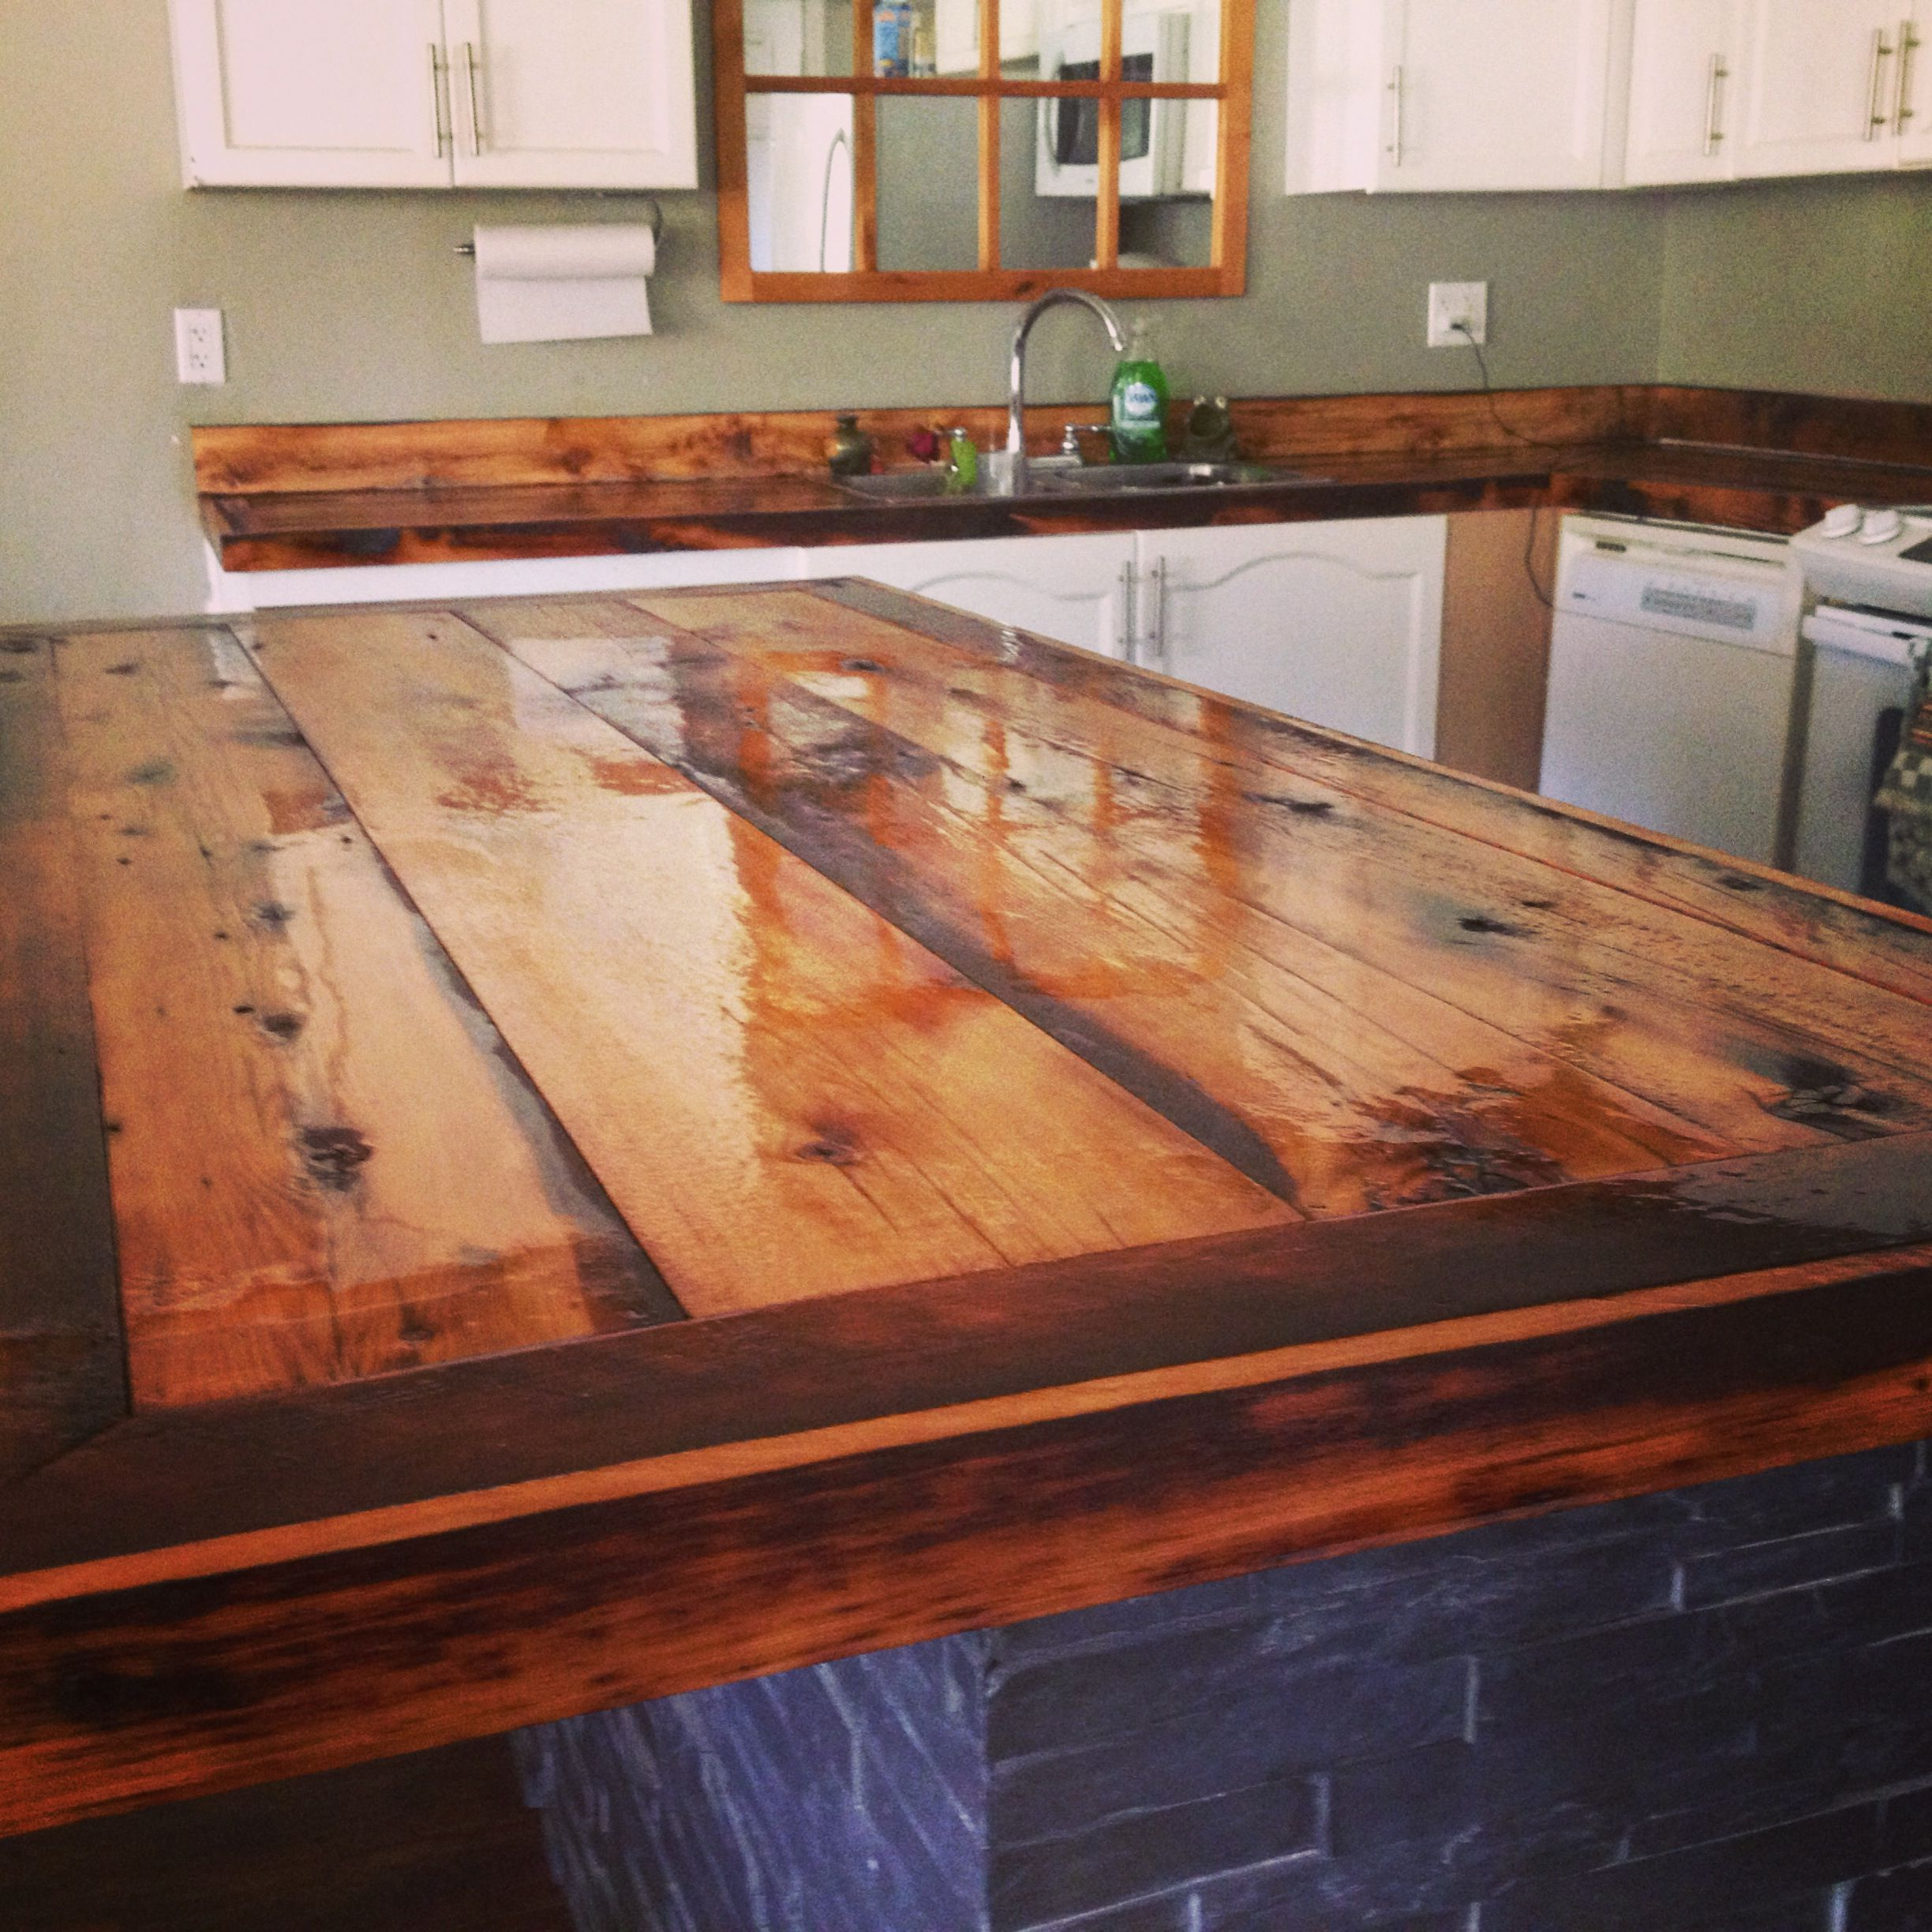 Diy Wood Kitchen Countertops: DIY Countertops Rustic Barn Board